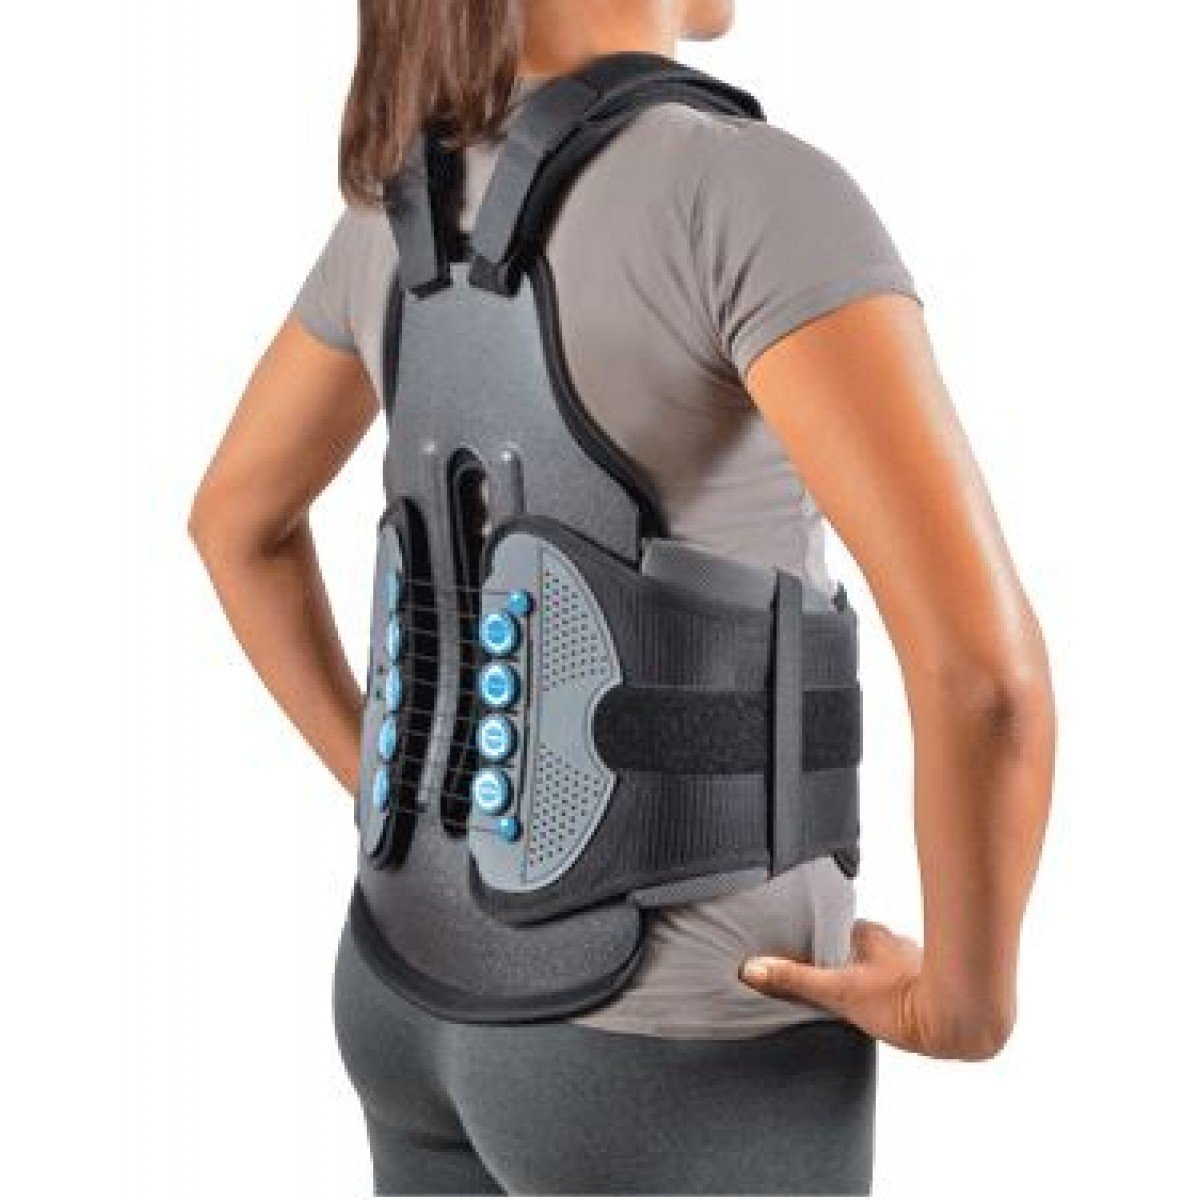 Top 5 Kyphosis Brace Options For 2017 - Top Posture Corrector Back brace for kyphosis pictures